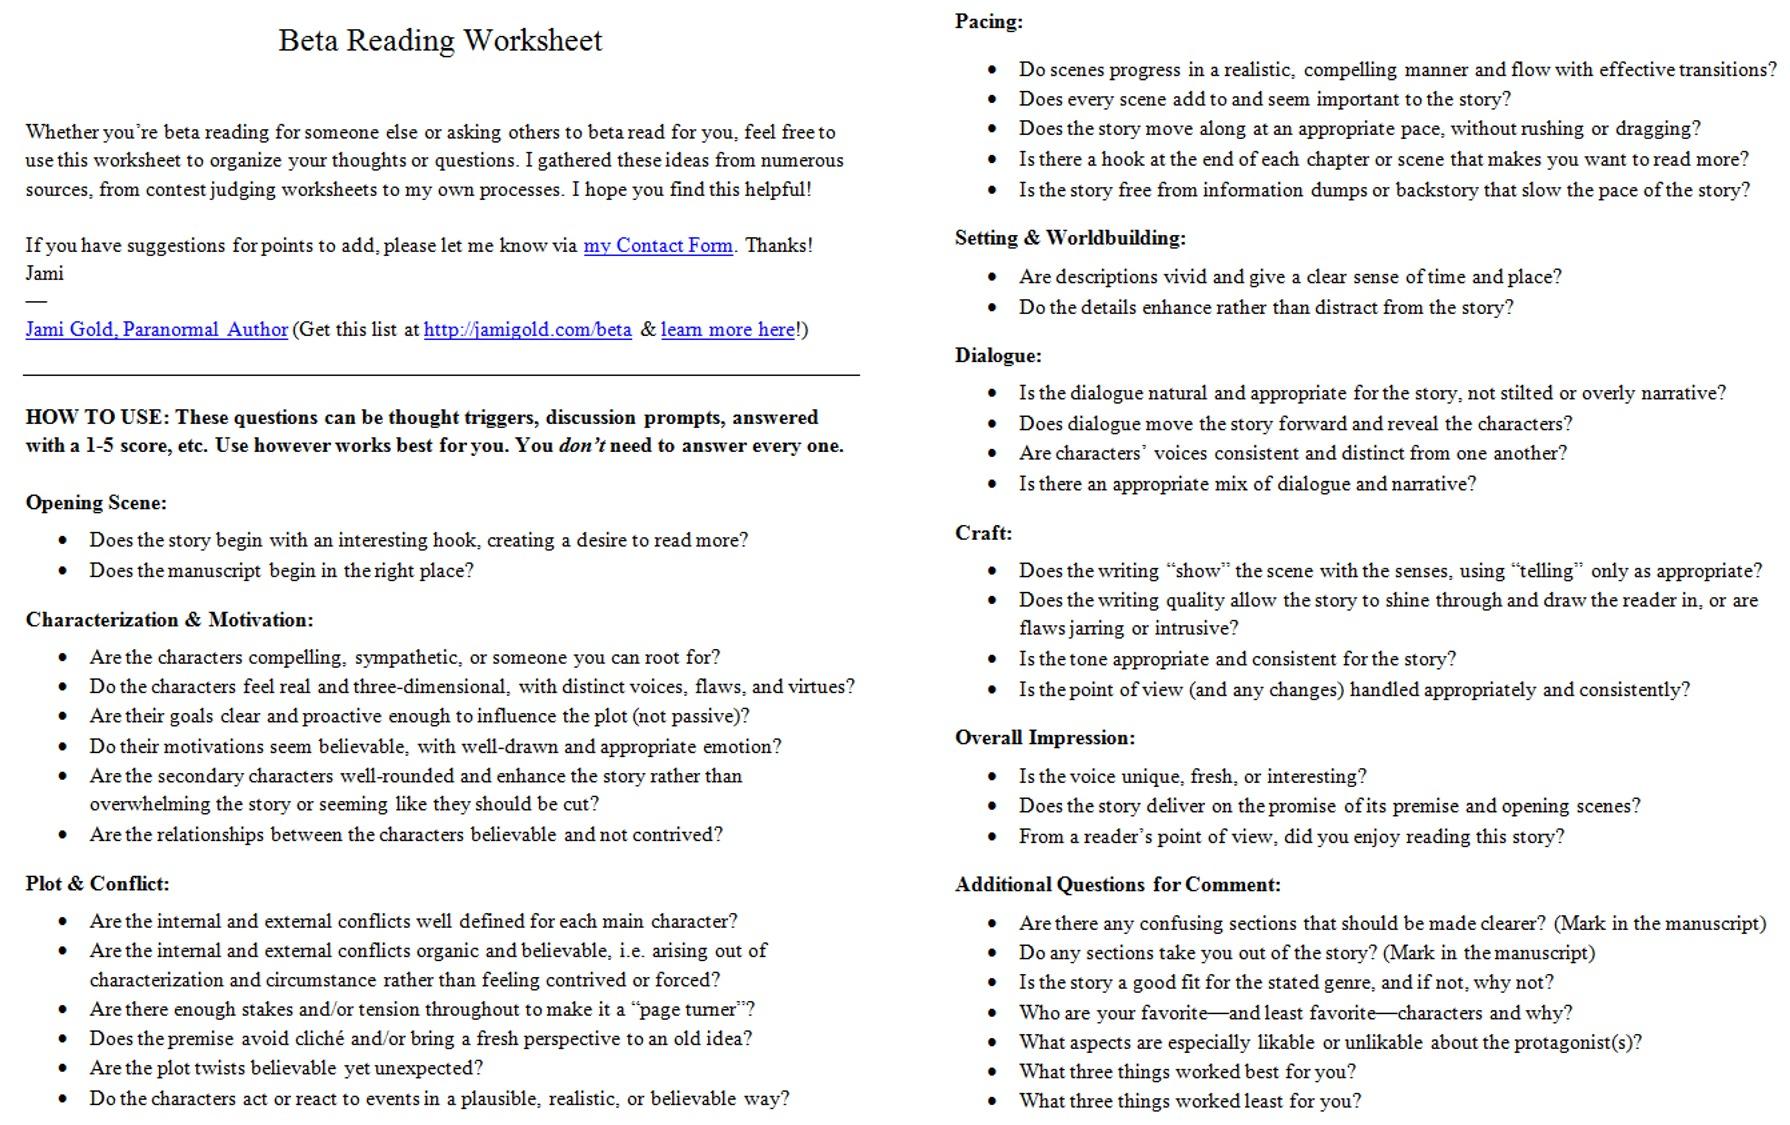 Aldiablosus  Personable Worksheets For Writers  Jami Gold Paranormal Author With Foxy Screen Shot Of The Twopage Beta Reading Worksheet With Amazing St Grade Math Worksheets Money Also Free Worksheets On Pronouns In Addition Free Printable Social Skills Worksheets For Kids And Macmillan Worksheets As Well As Reverse Percentages Worksheet Additionally Webelos Fitness Badge Worksheet From Jamigoldcom With Aldiablosus  Foxy Worksheets For Writers  Jami Gold Paranormal Author With Amazing Screen Shot Of The Twopage Beta Reading Worksheet And Personable St Grade Math Worksheets Money Also Free Worksheets On Pronouns In Addition Free Printable Social Skills Worksheets For Kids From Jamigoldcom